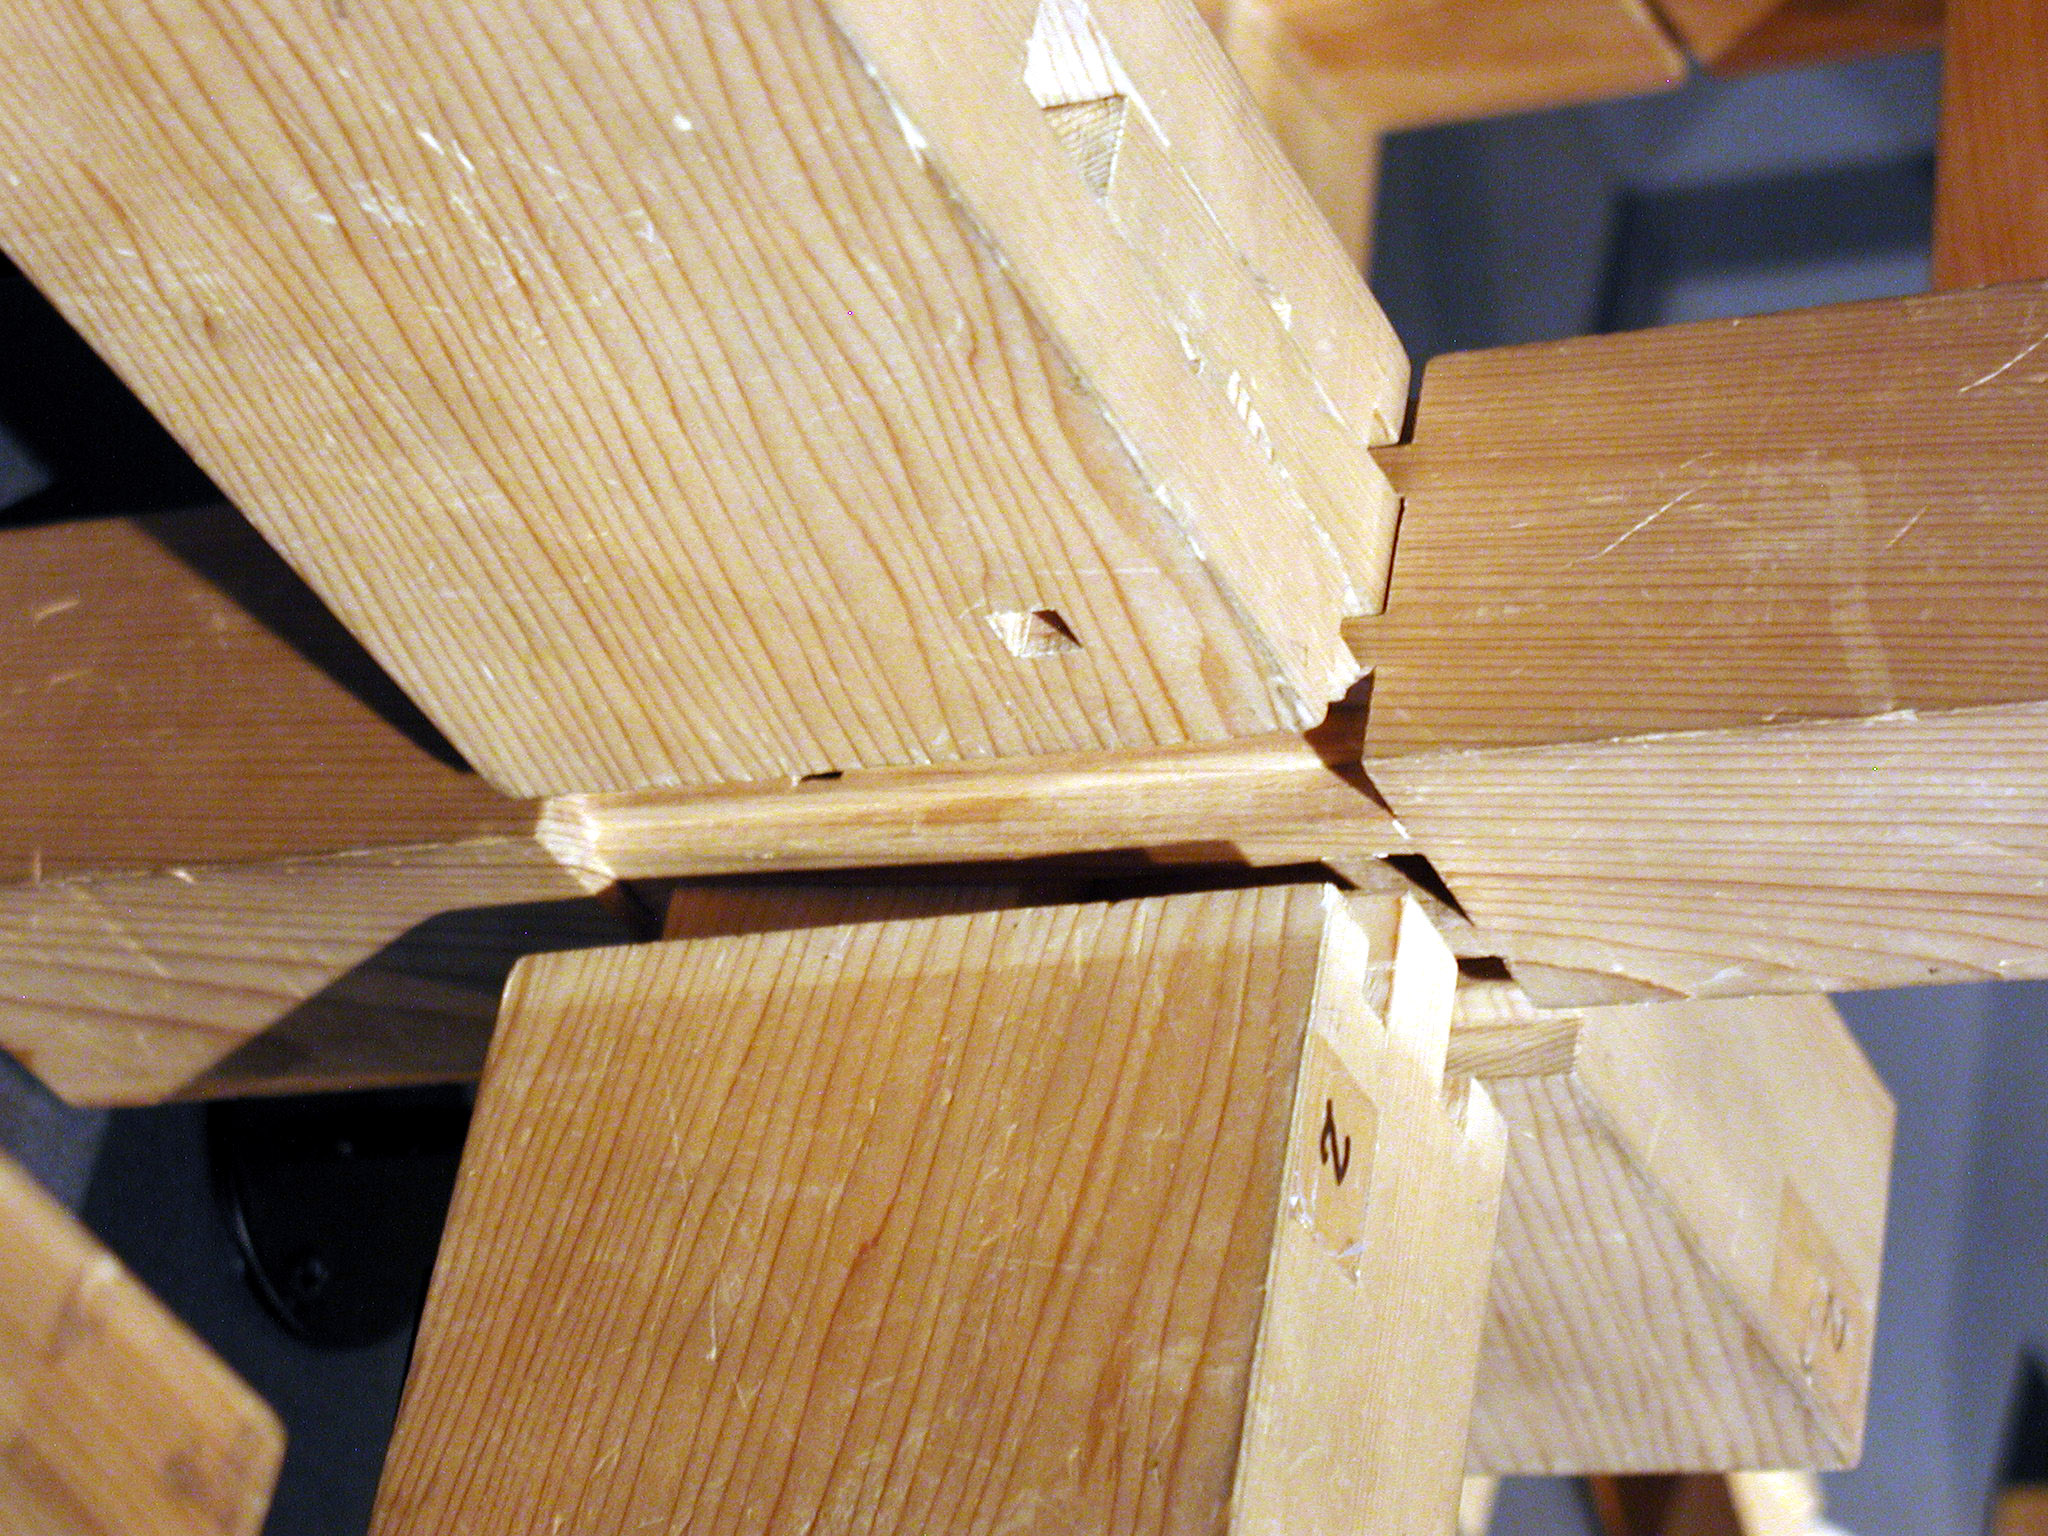 Wood Joints